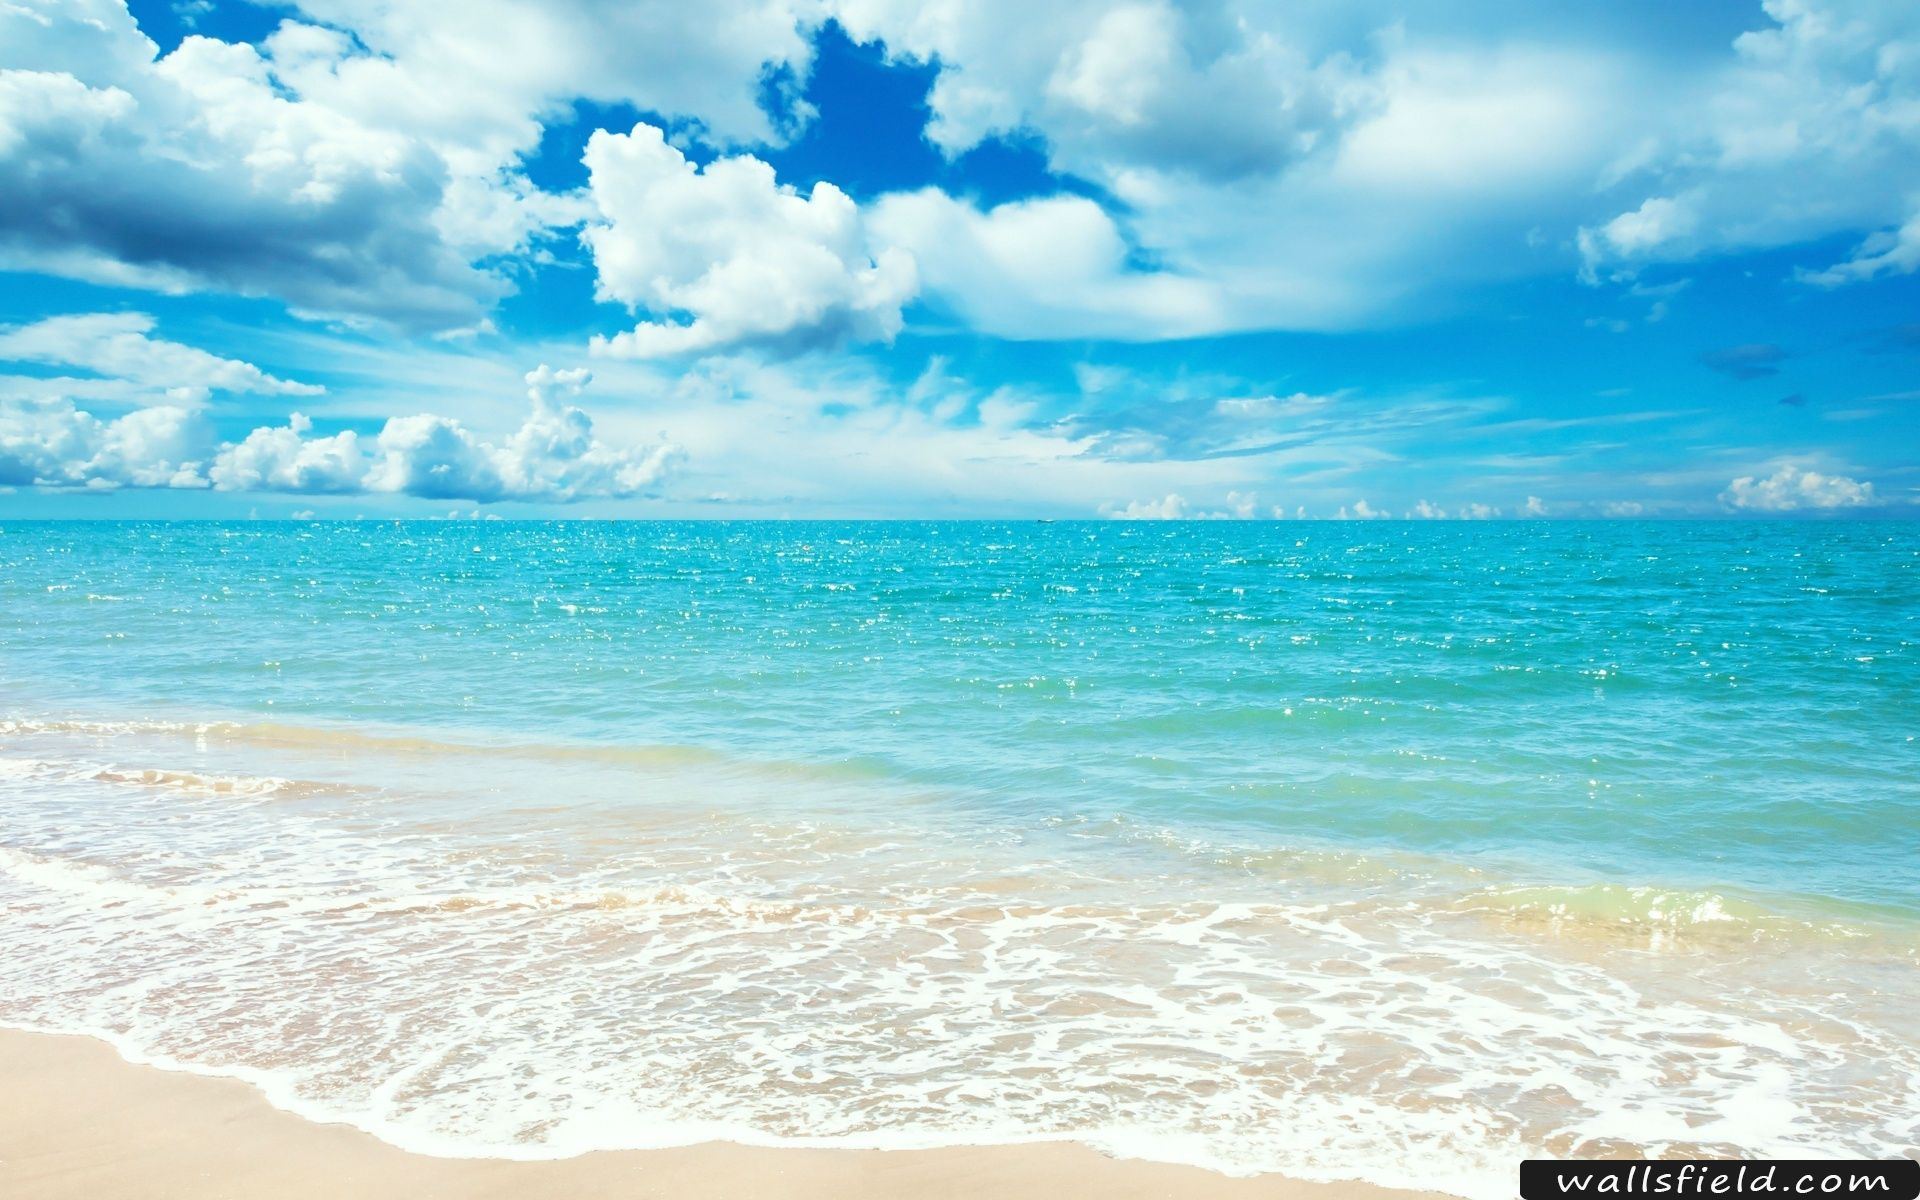 Sunny Day Wallsfield Com Free Hd Wallpapers Beach Wallpaper Ocean Wallpaper Summer Wallpaper